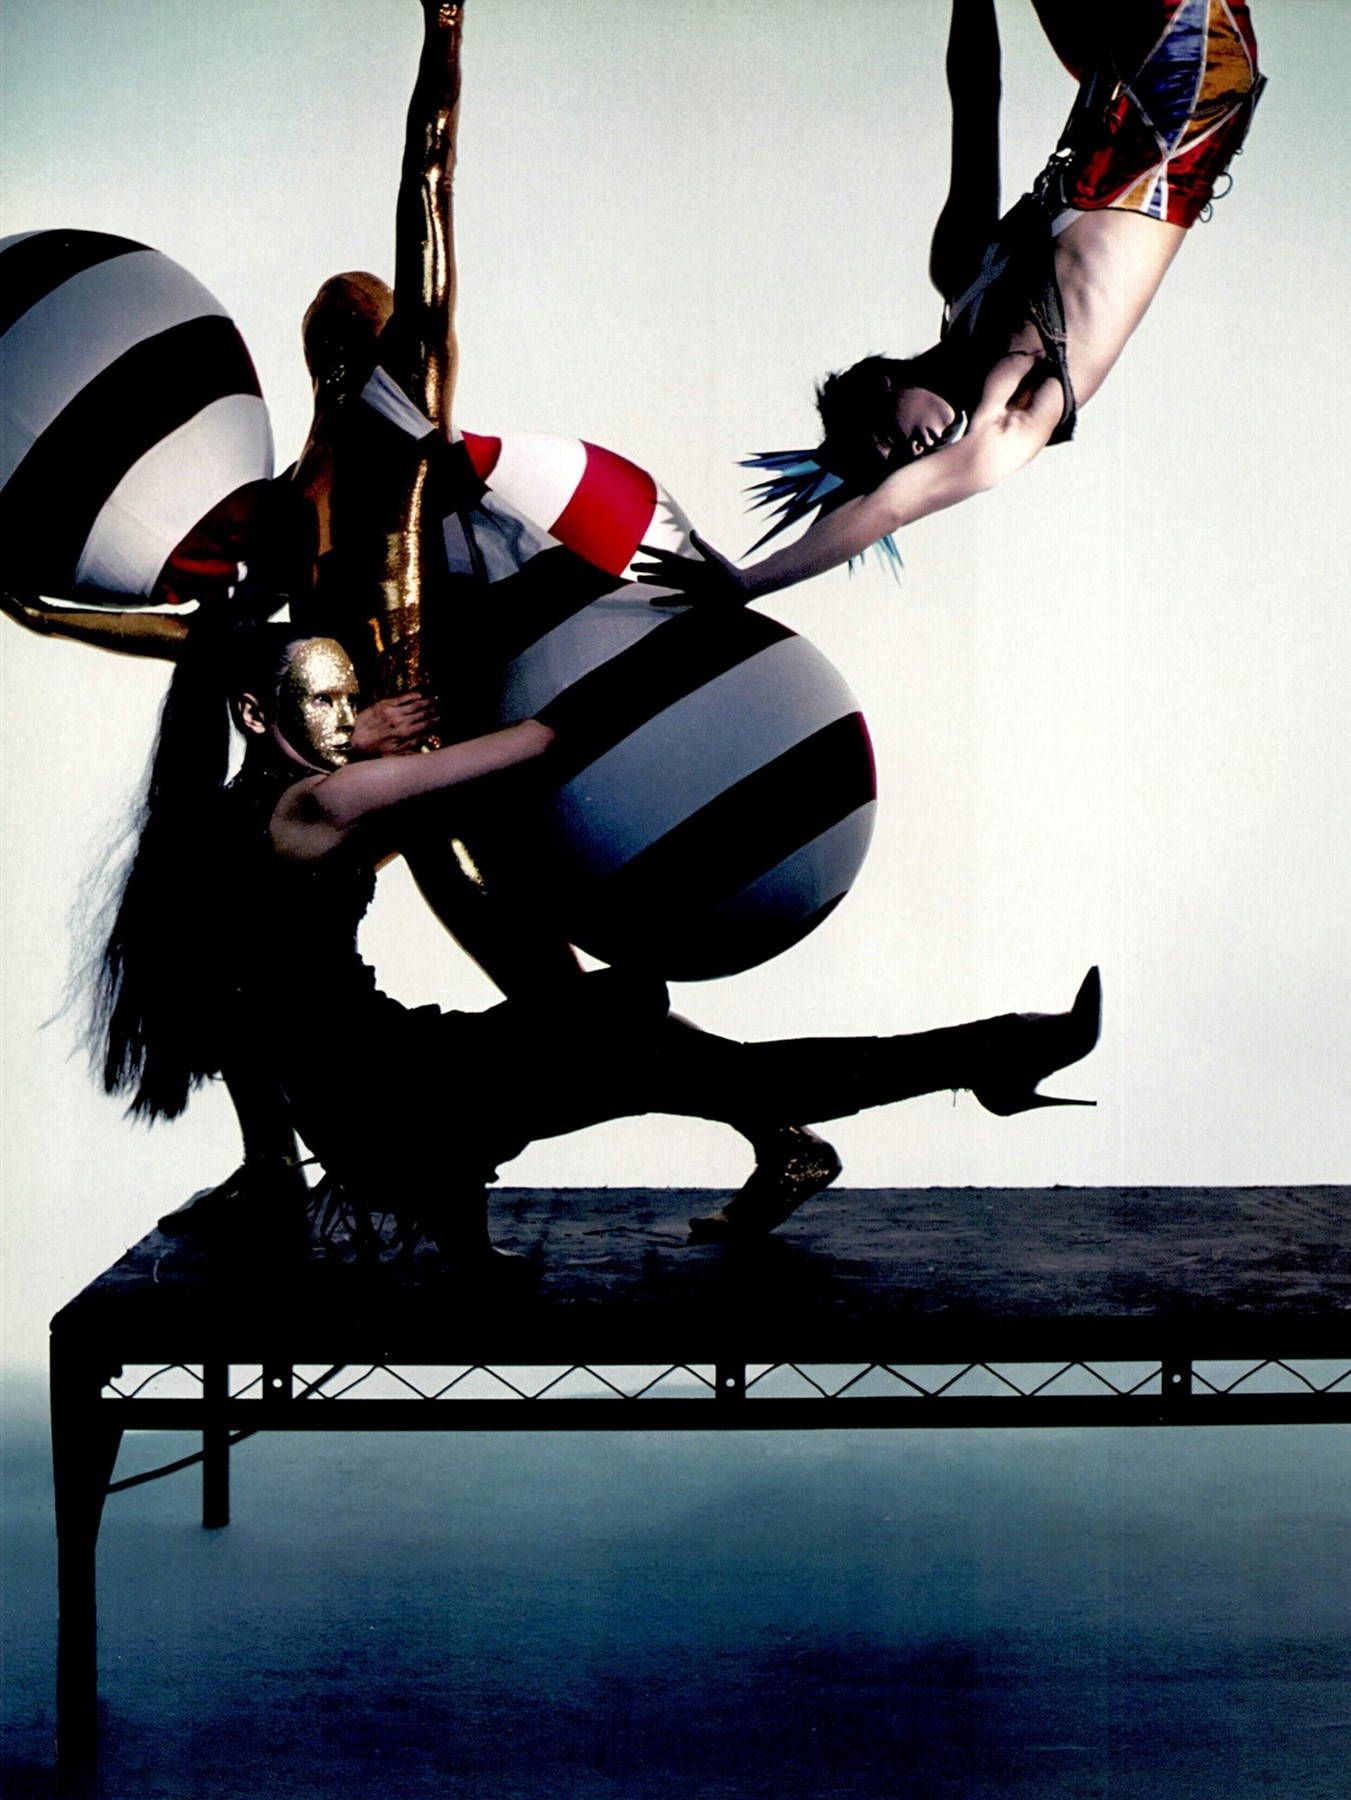 Editorial photo featuring Gareth Pugh's graduation collection, Dazed & Confused, April 2004